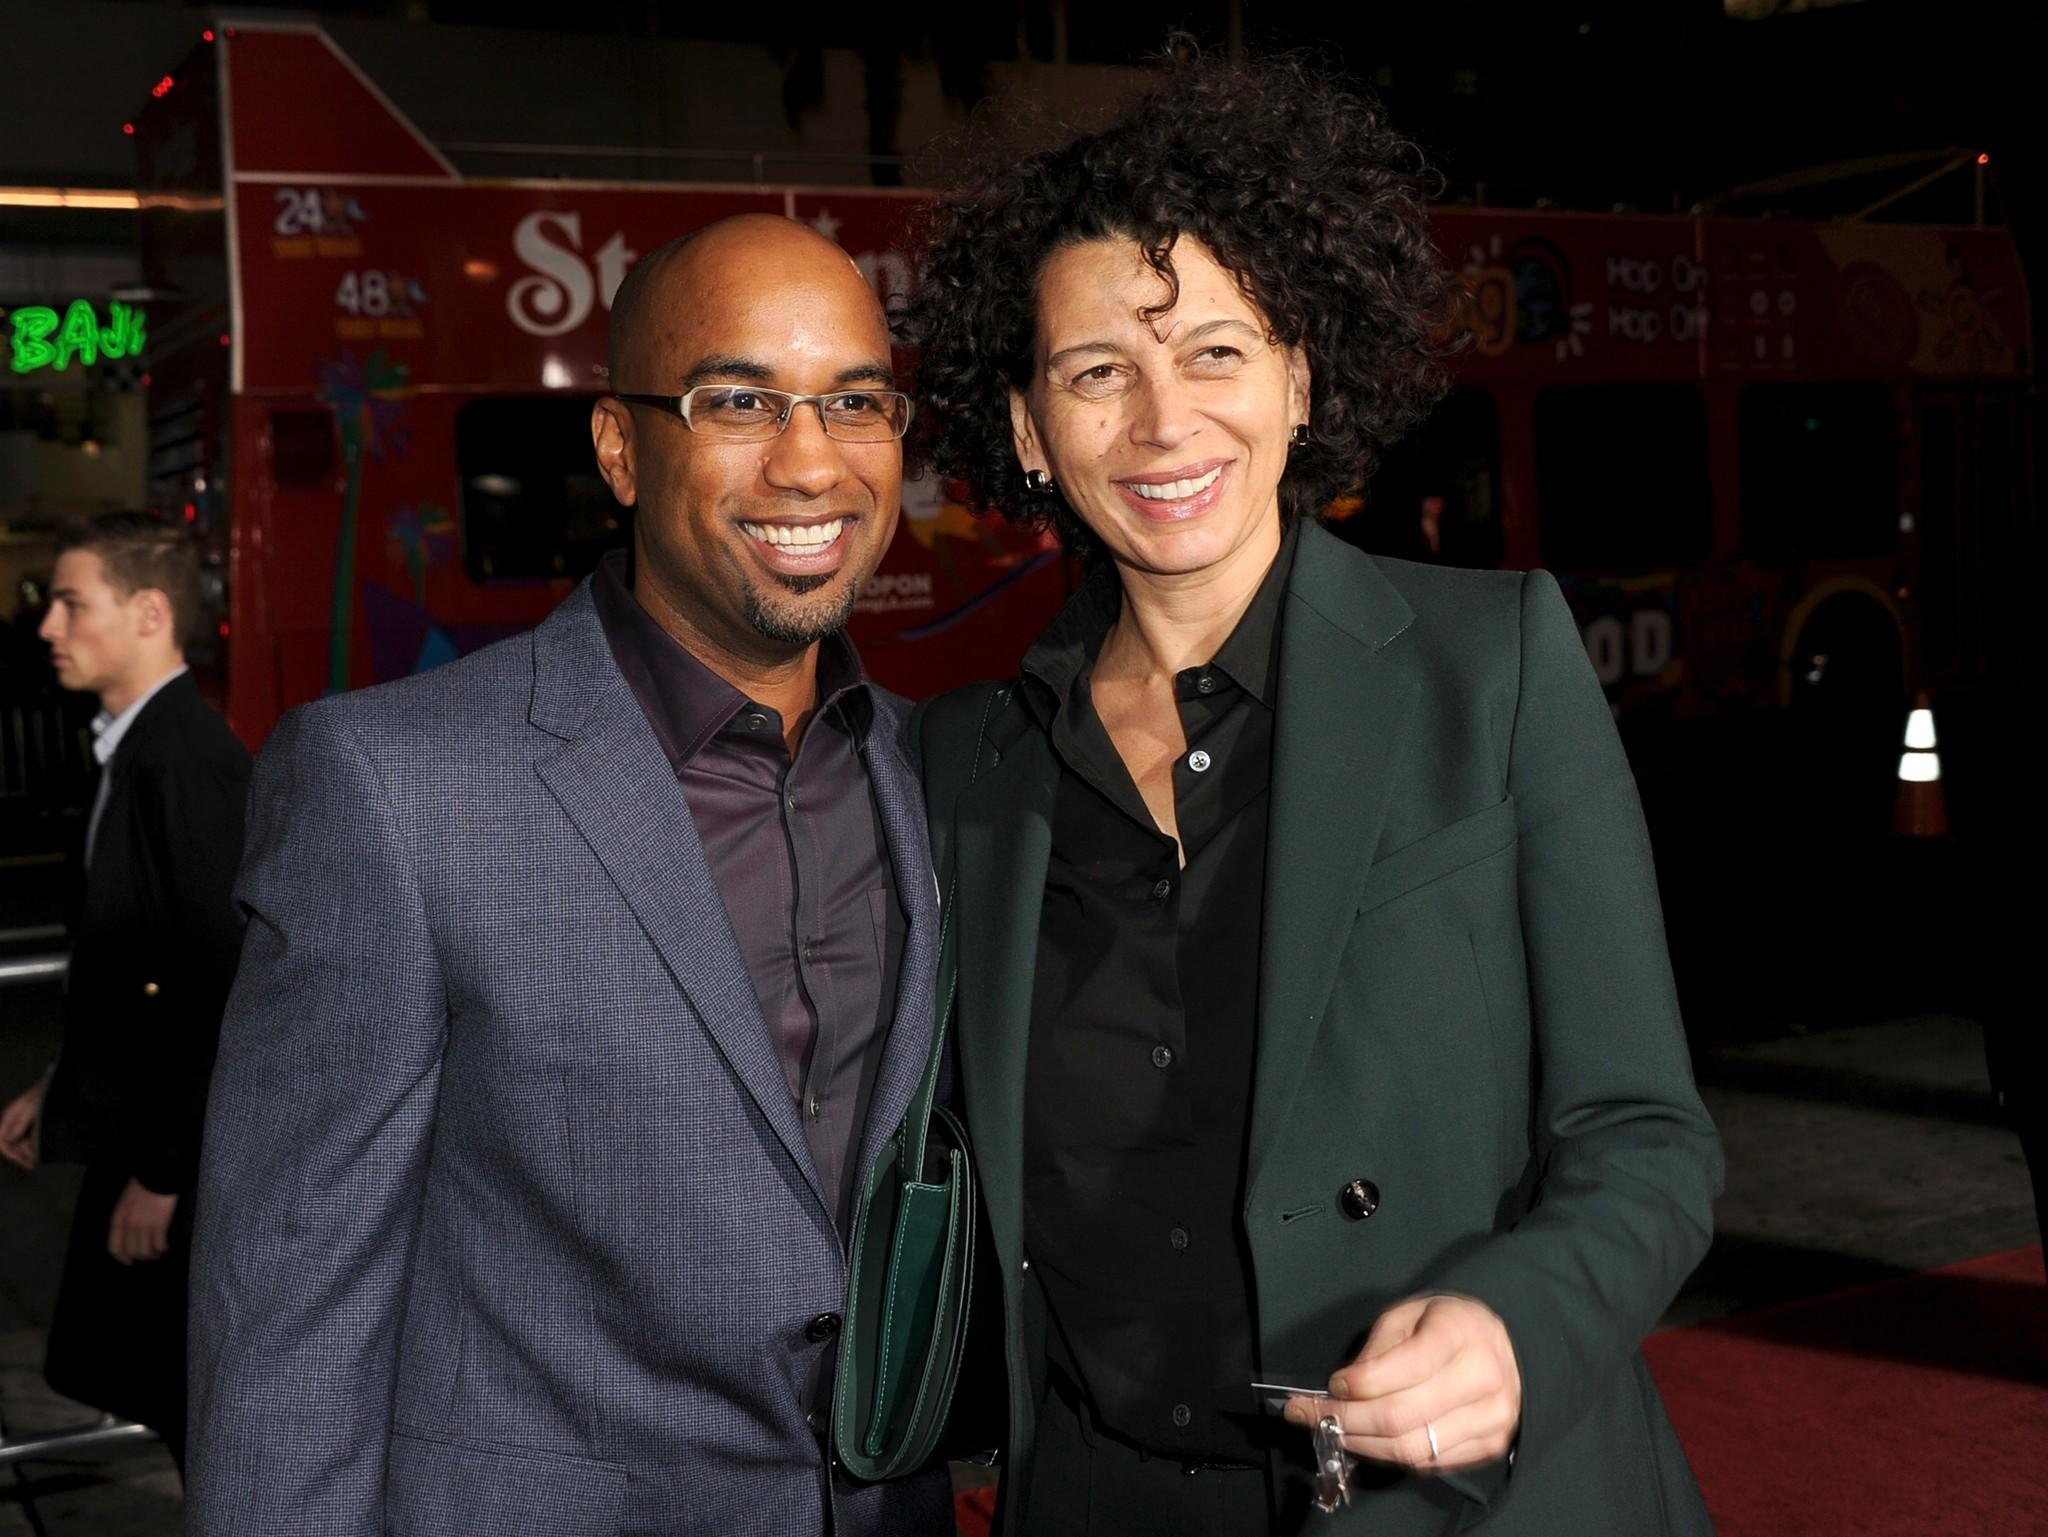 """Universal Pictures Chairman Donna Langley, right, attends the """"Ride Along"""" premiere Jan. 13 at the TCL Chinese Theatre in Hollywood with the film's director, Tim Story. Langley's contract has been extended through 2017."""